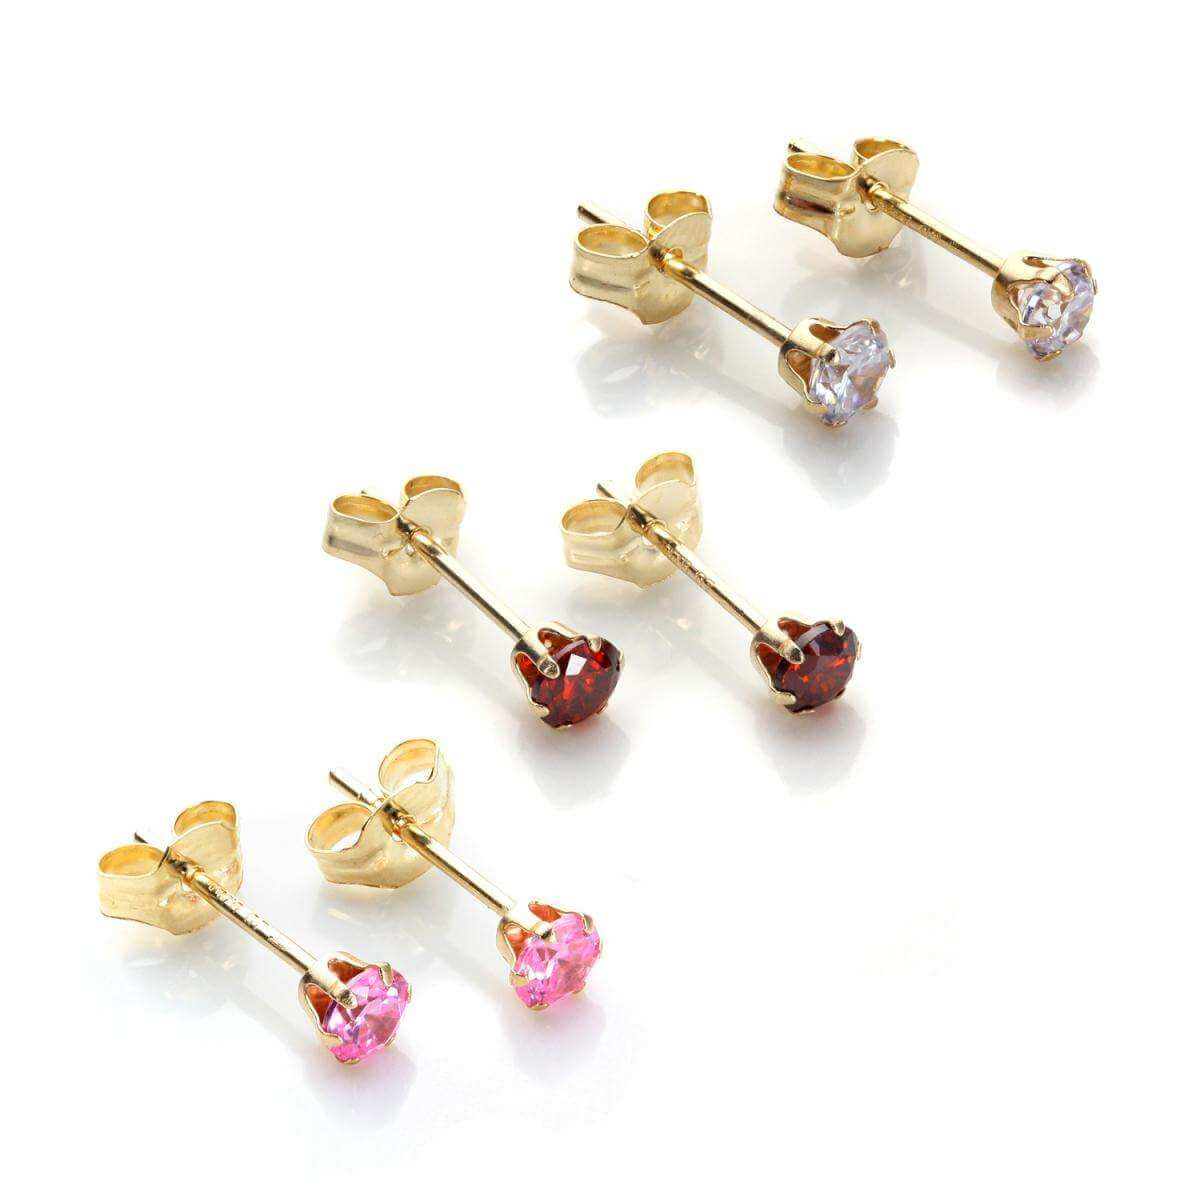 9ct Gold 3mm Crystal Stud Earrings Set